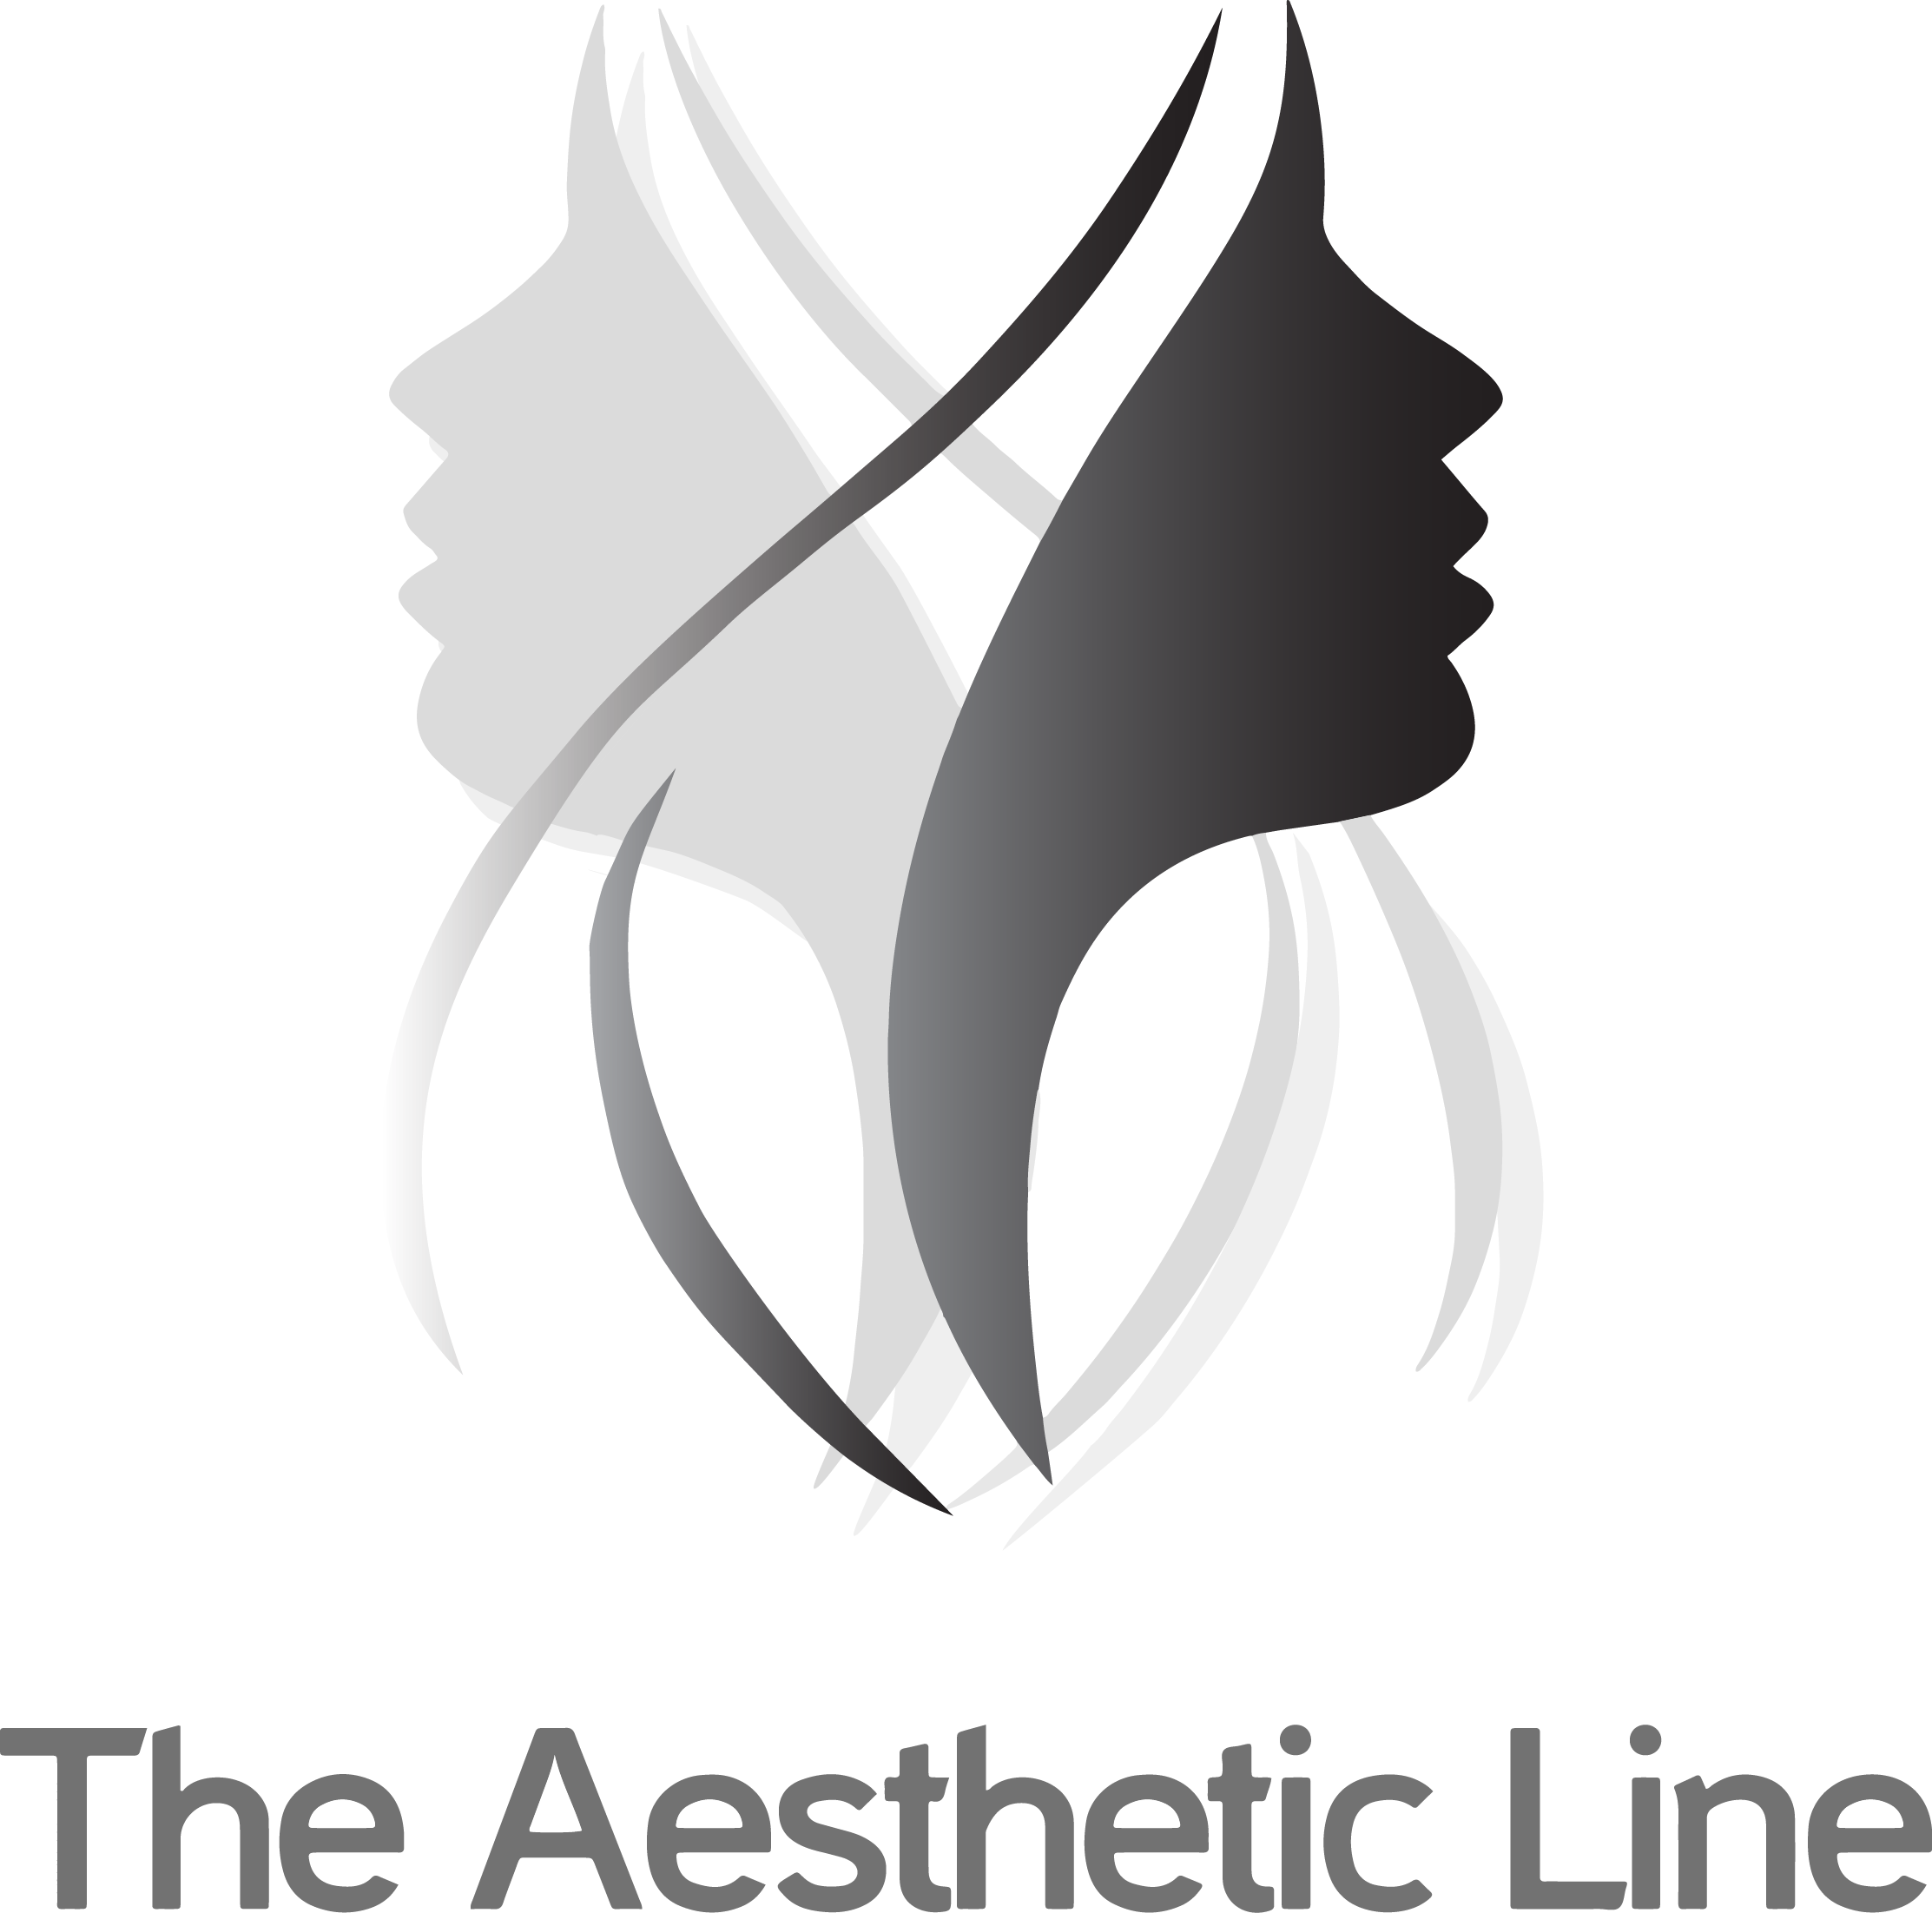 TheAestheticLine